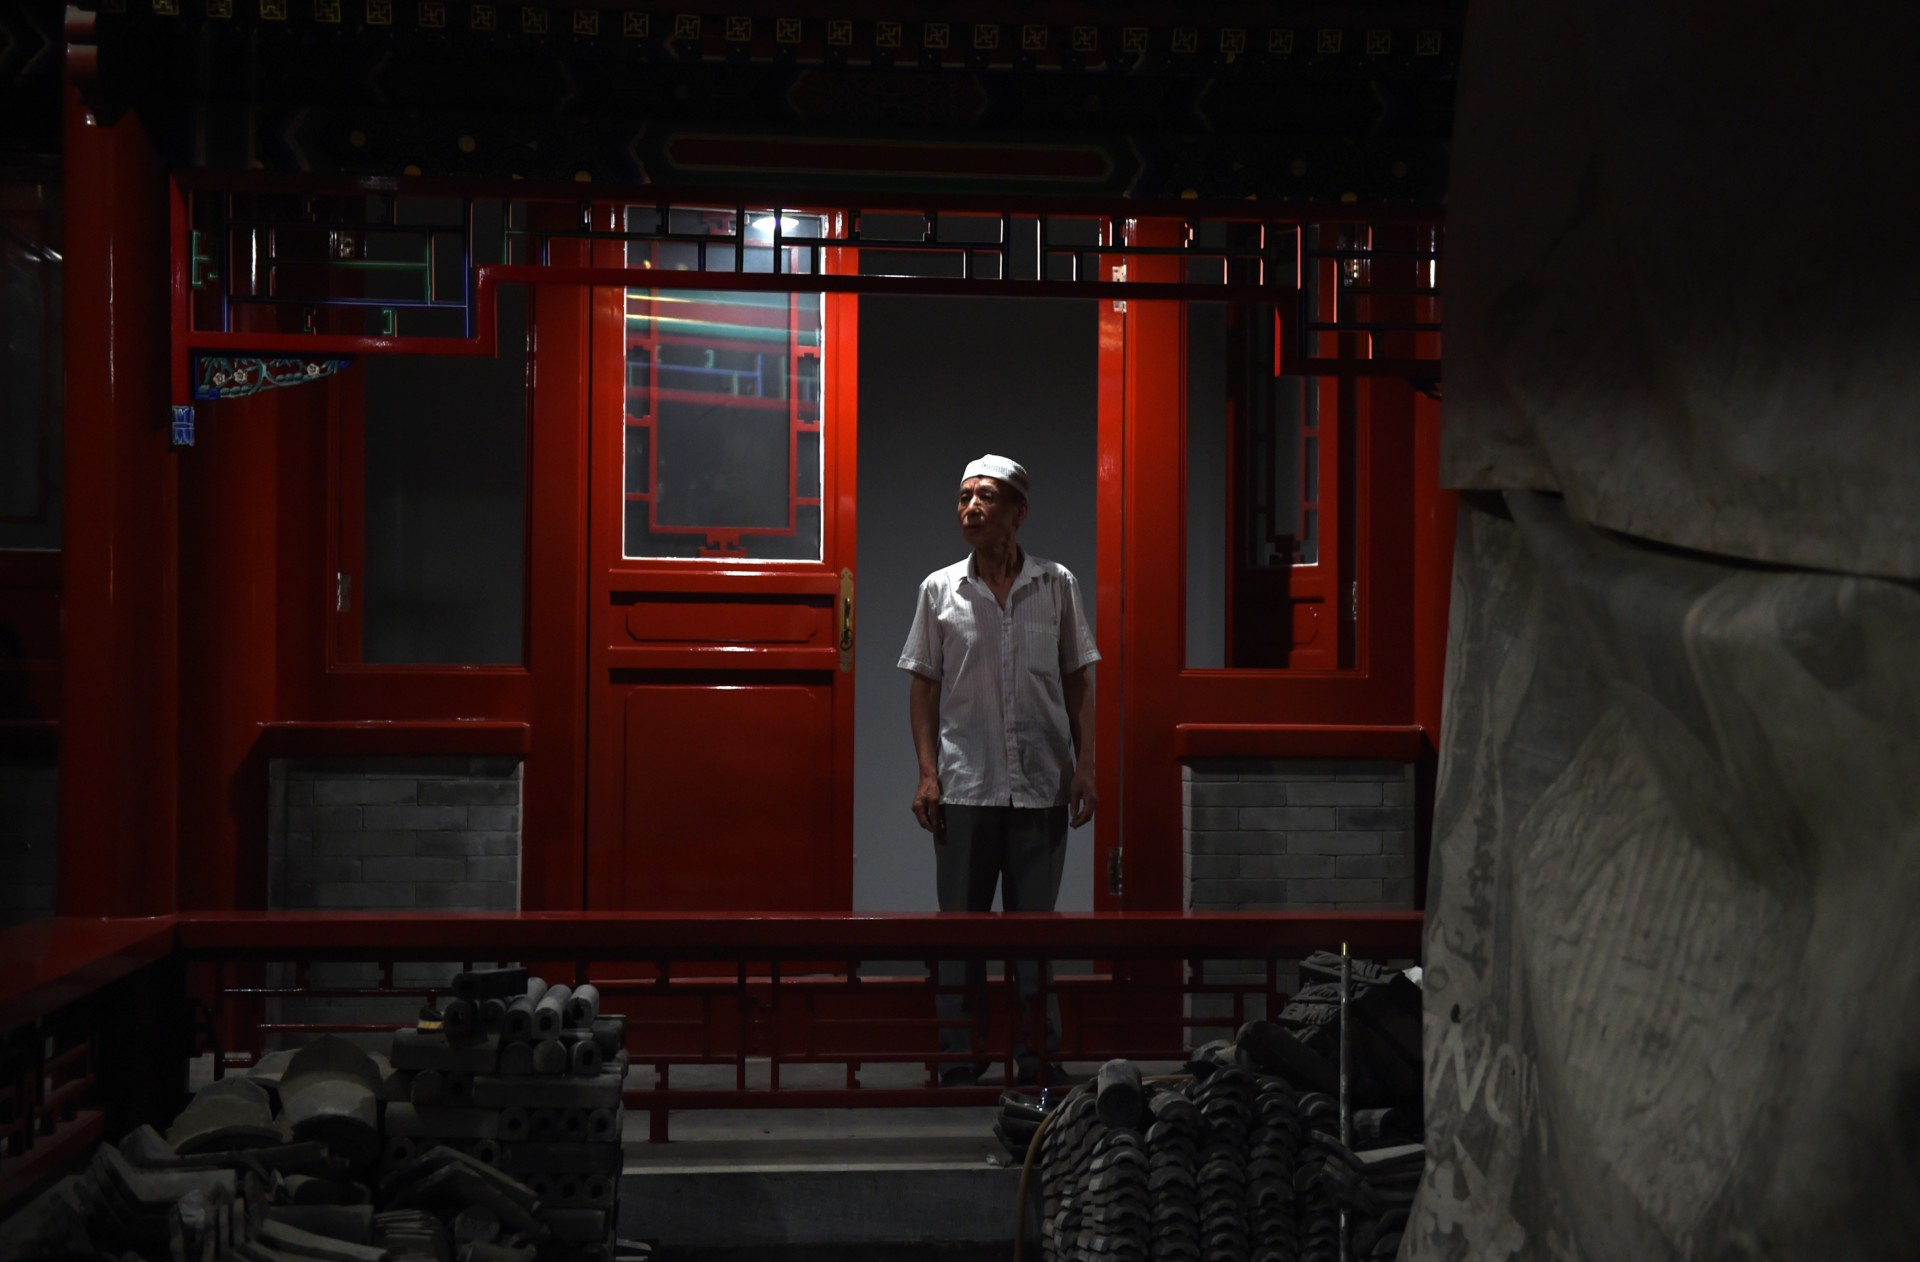 The Terrible 'Sinicization' of Islam in China